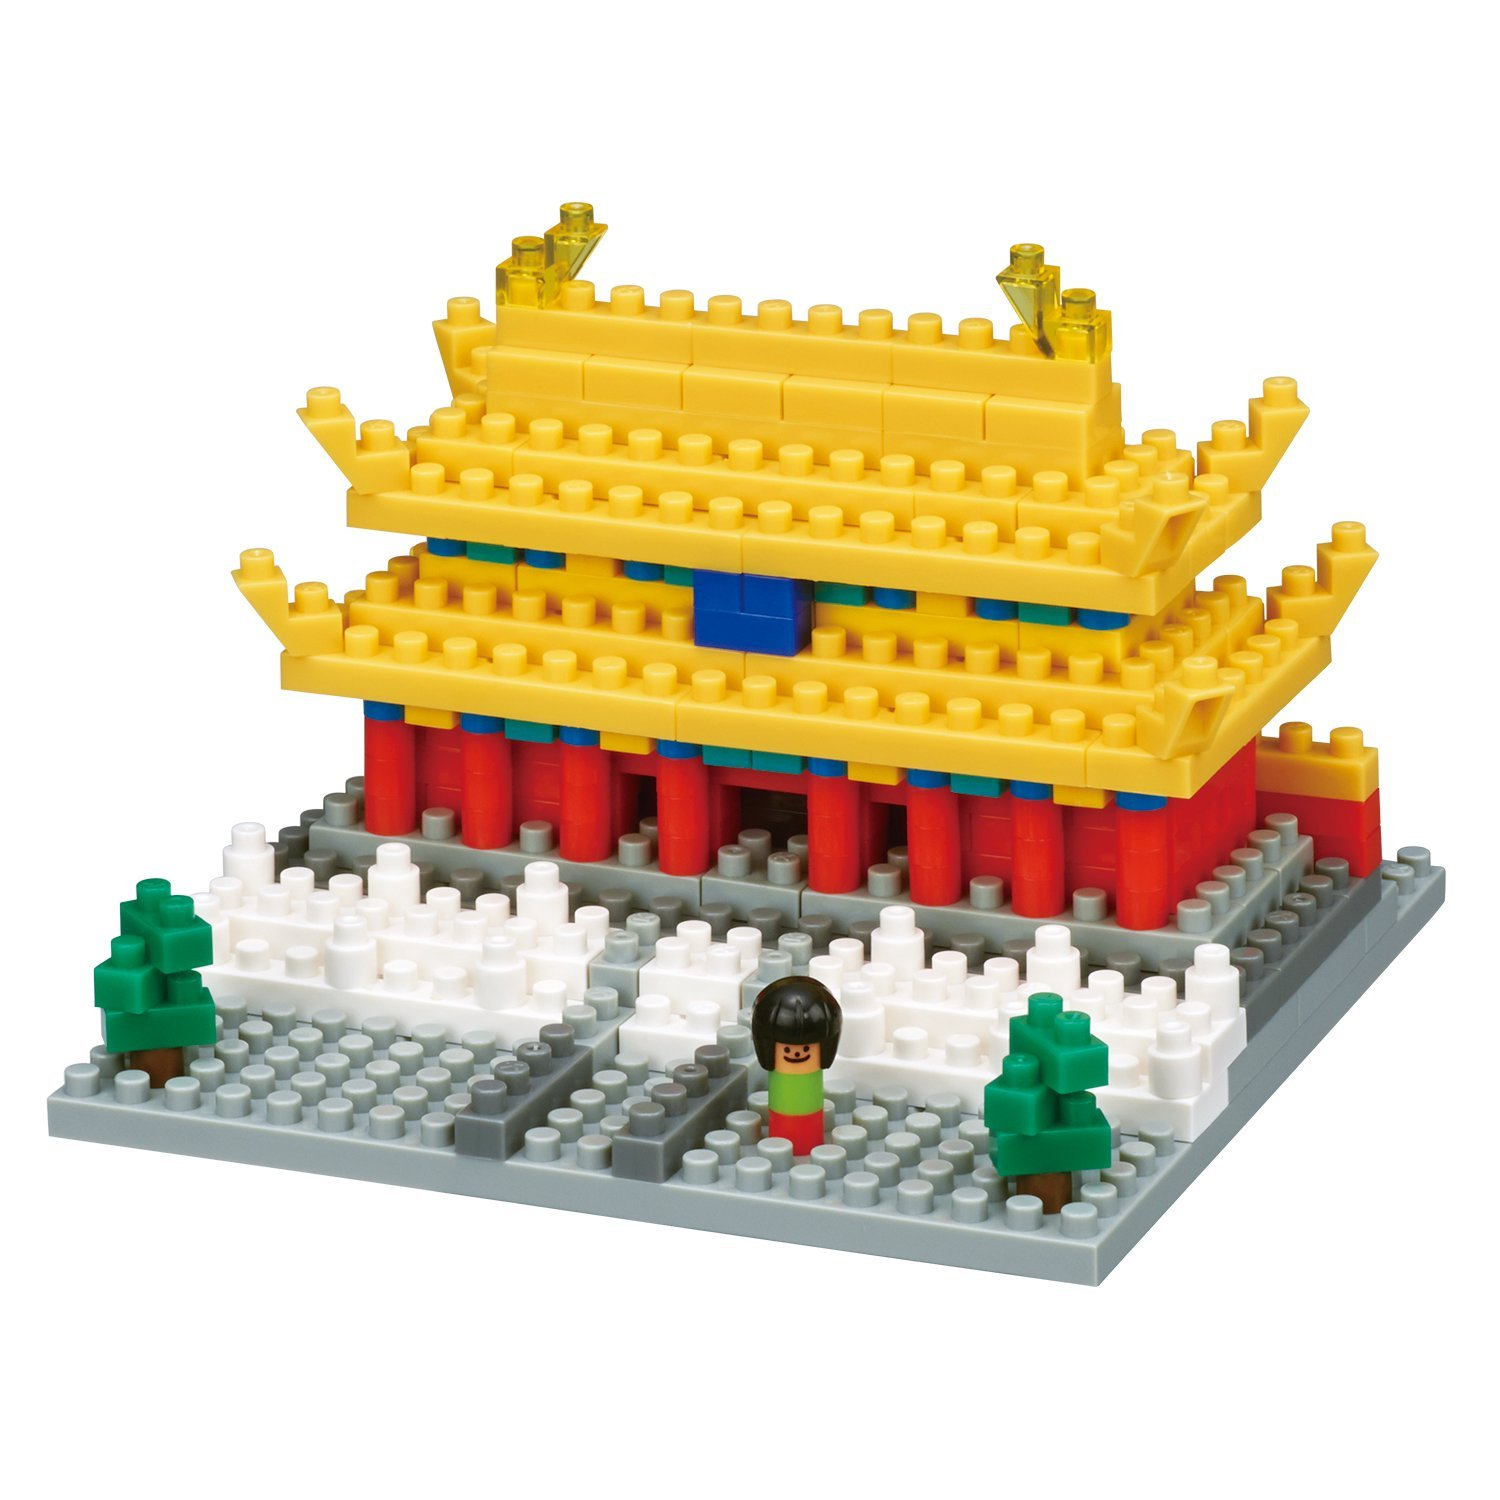 Forbidden City Building Set (290 Piece), The Imperial Palace of the Ming Dynasty is in the... by